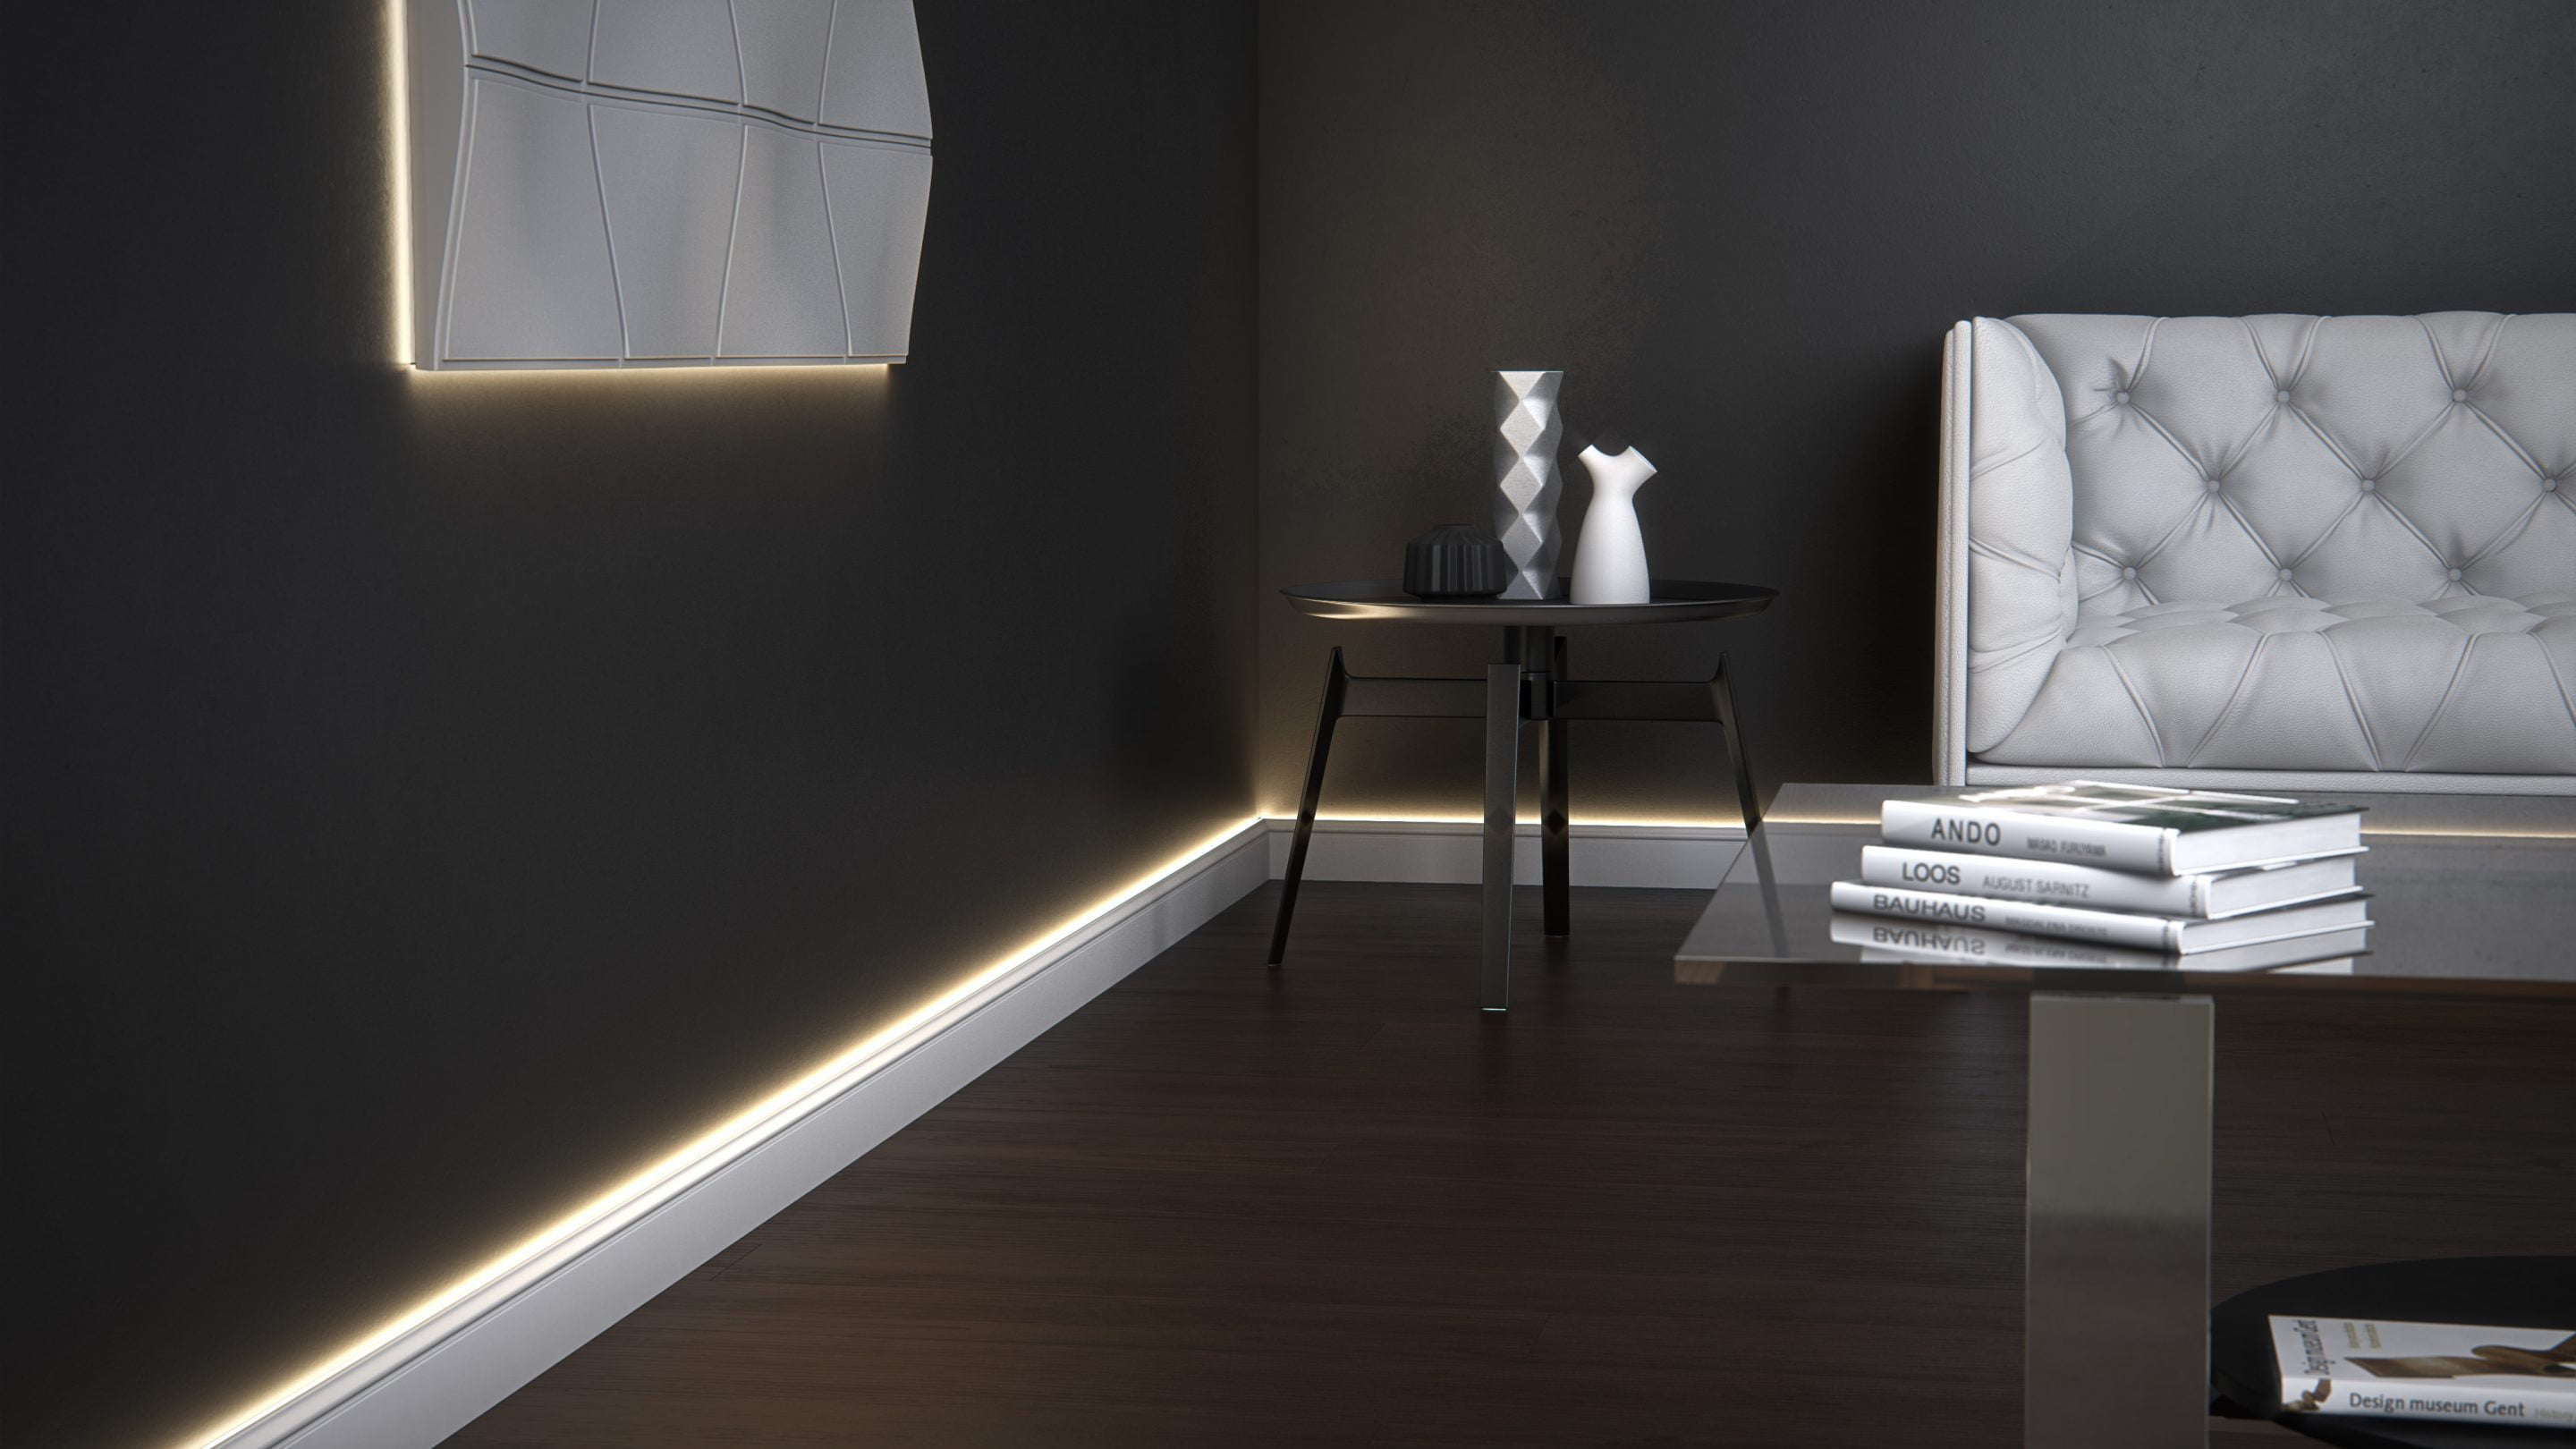 led baseboard lighting on dimensions wallstyl light baseboard slave nmc decoration